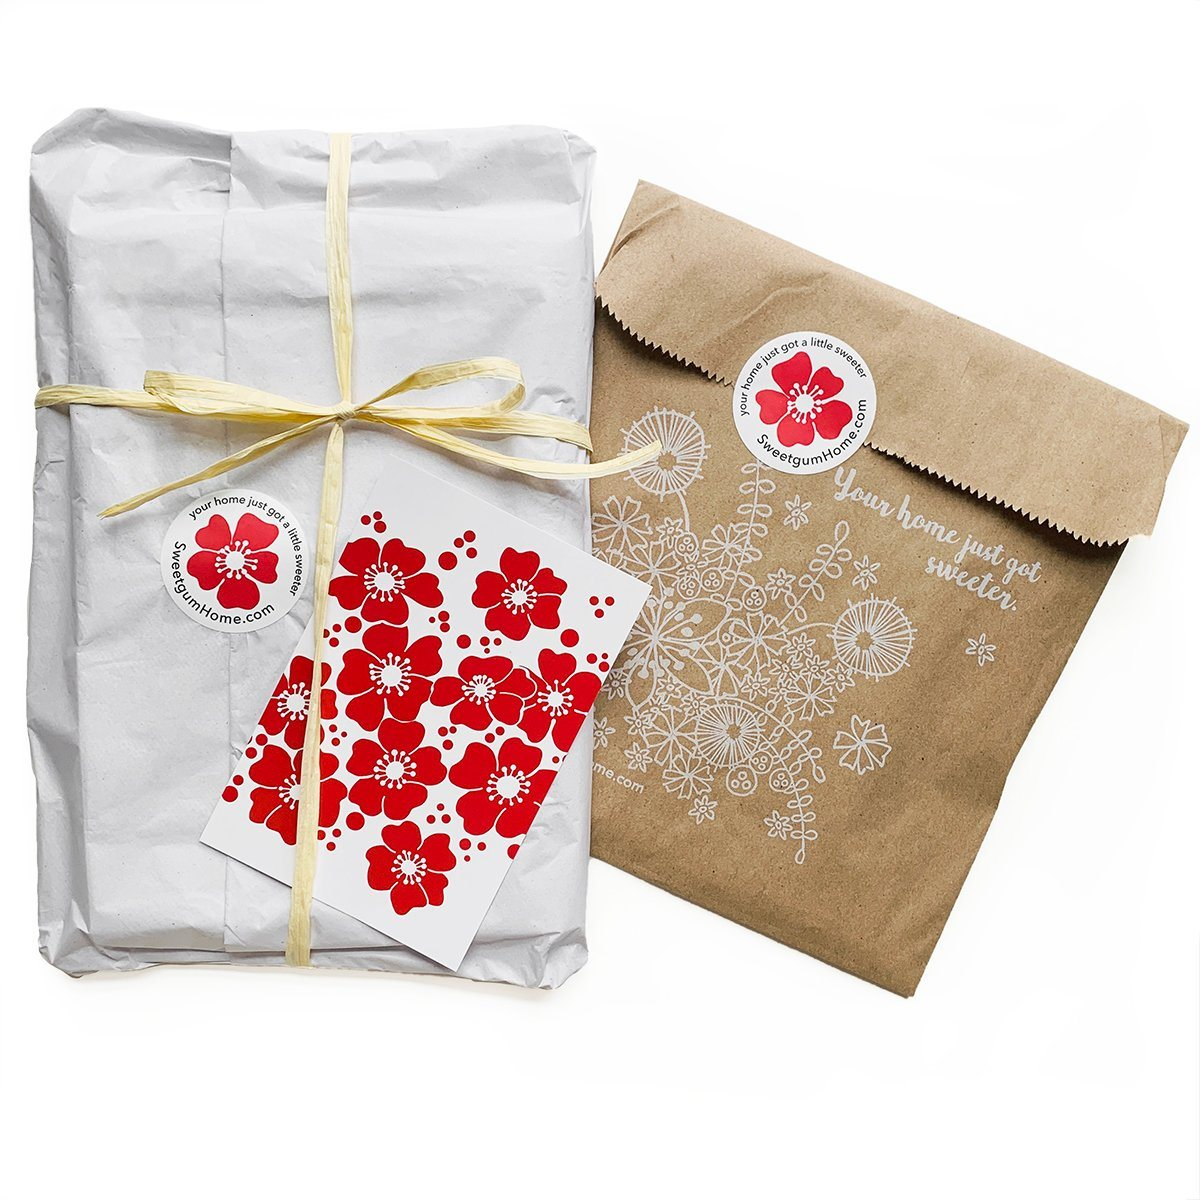 Gift Wrapping sweetgum textiles company, LLC